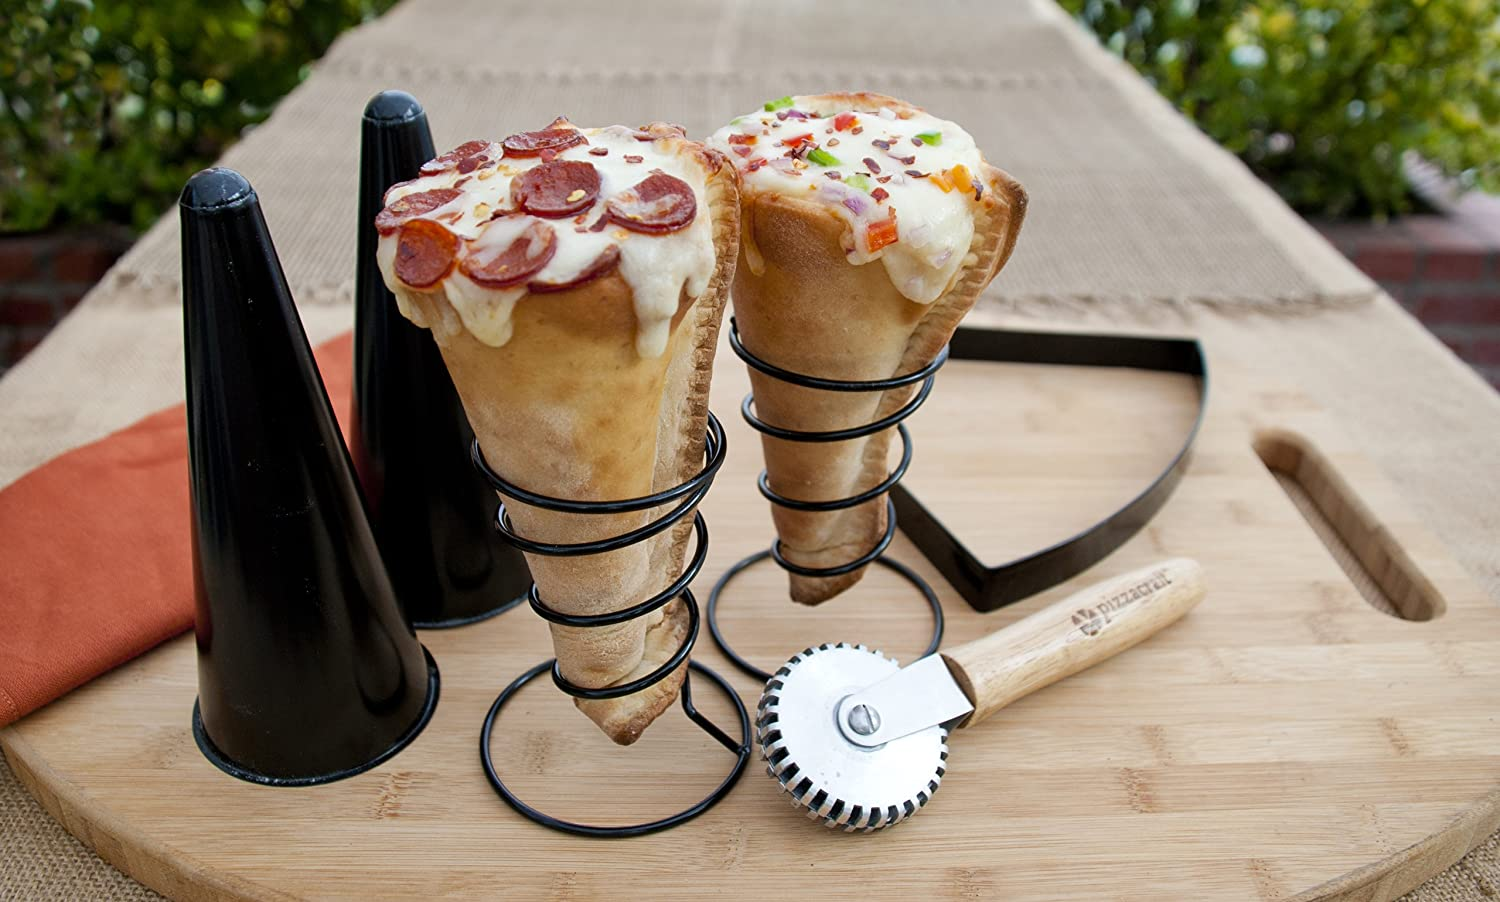 Pizzacraft New Pizza Cone Set For 2 6 Pieces Amazoncouk Garden